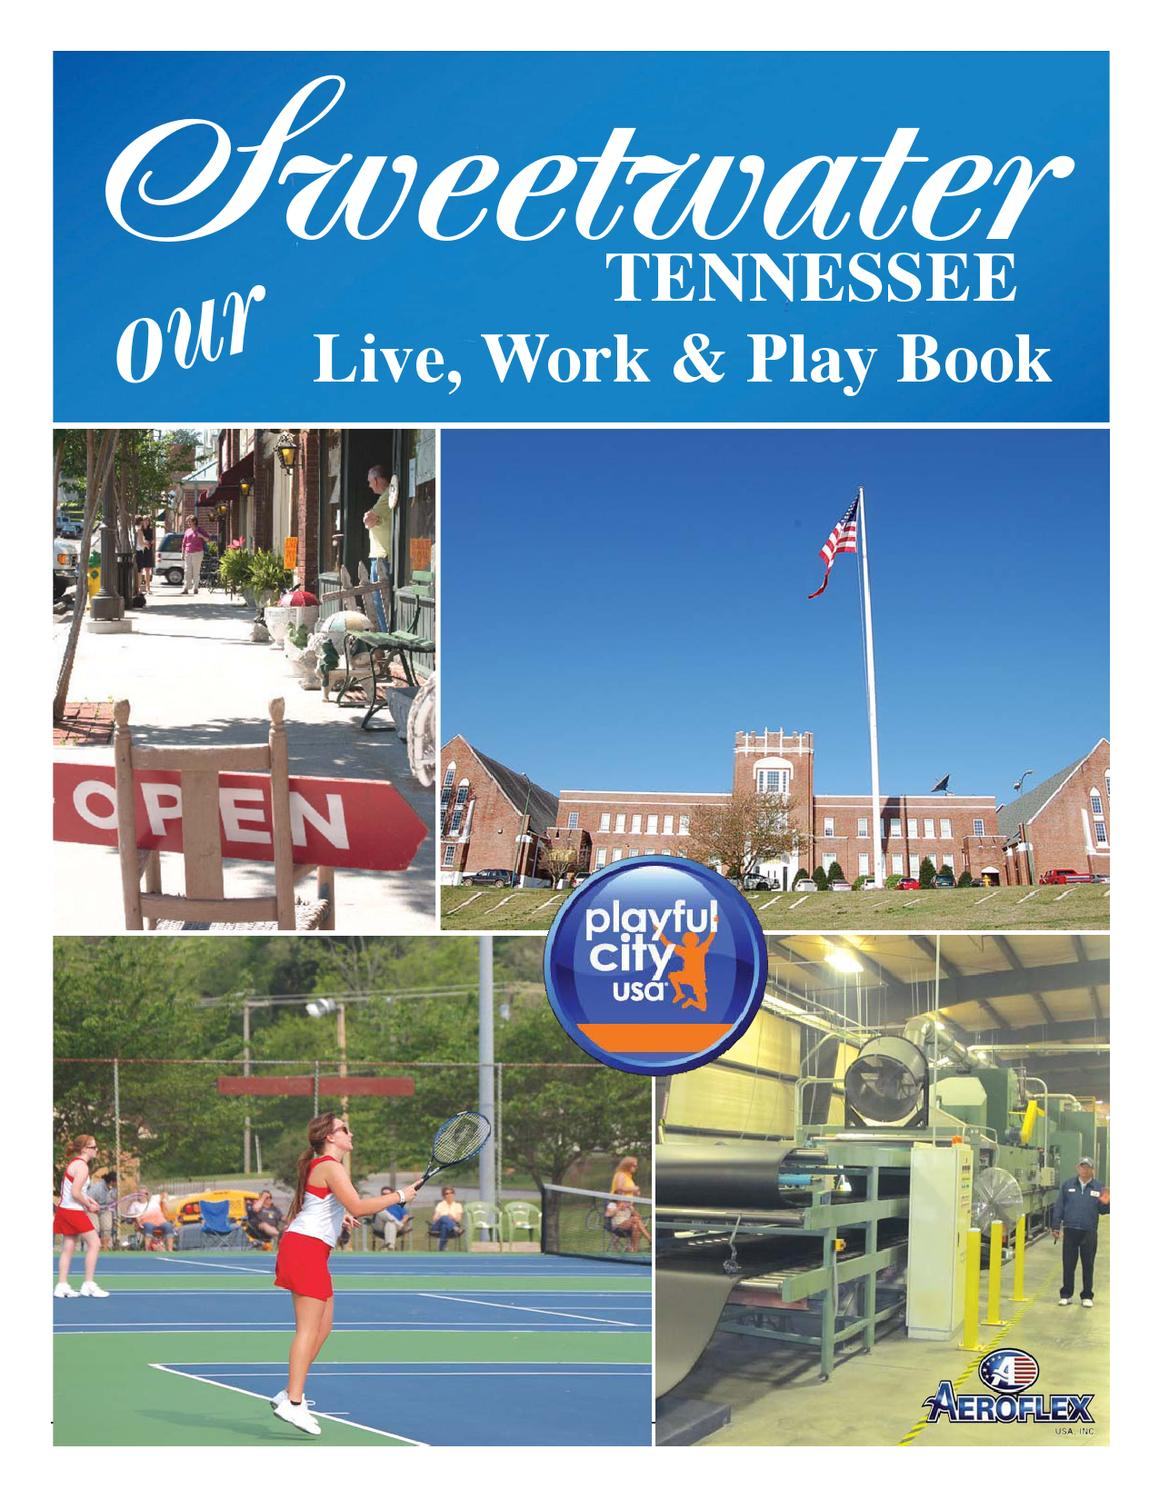 sweetwater 39 s live work play book by the advocate